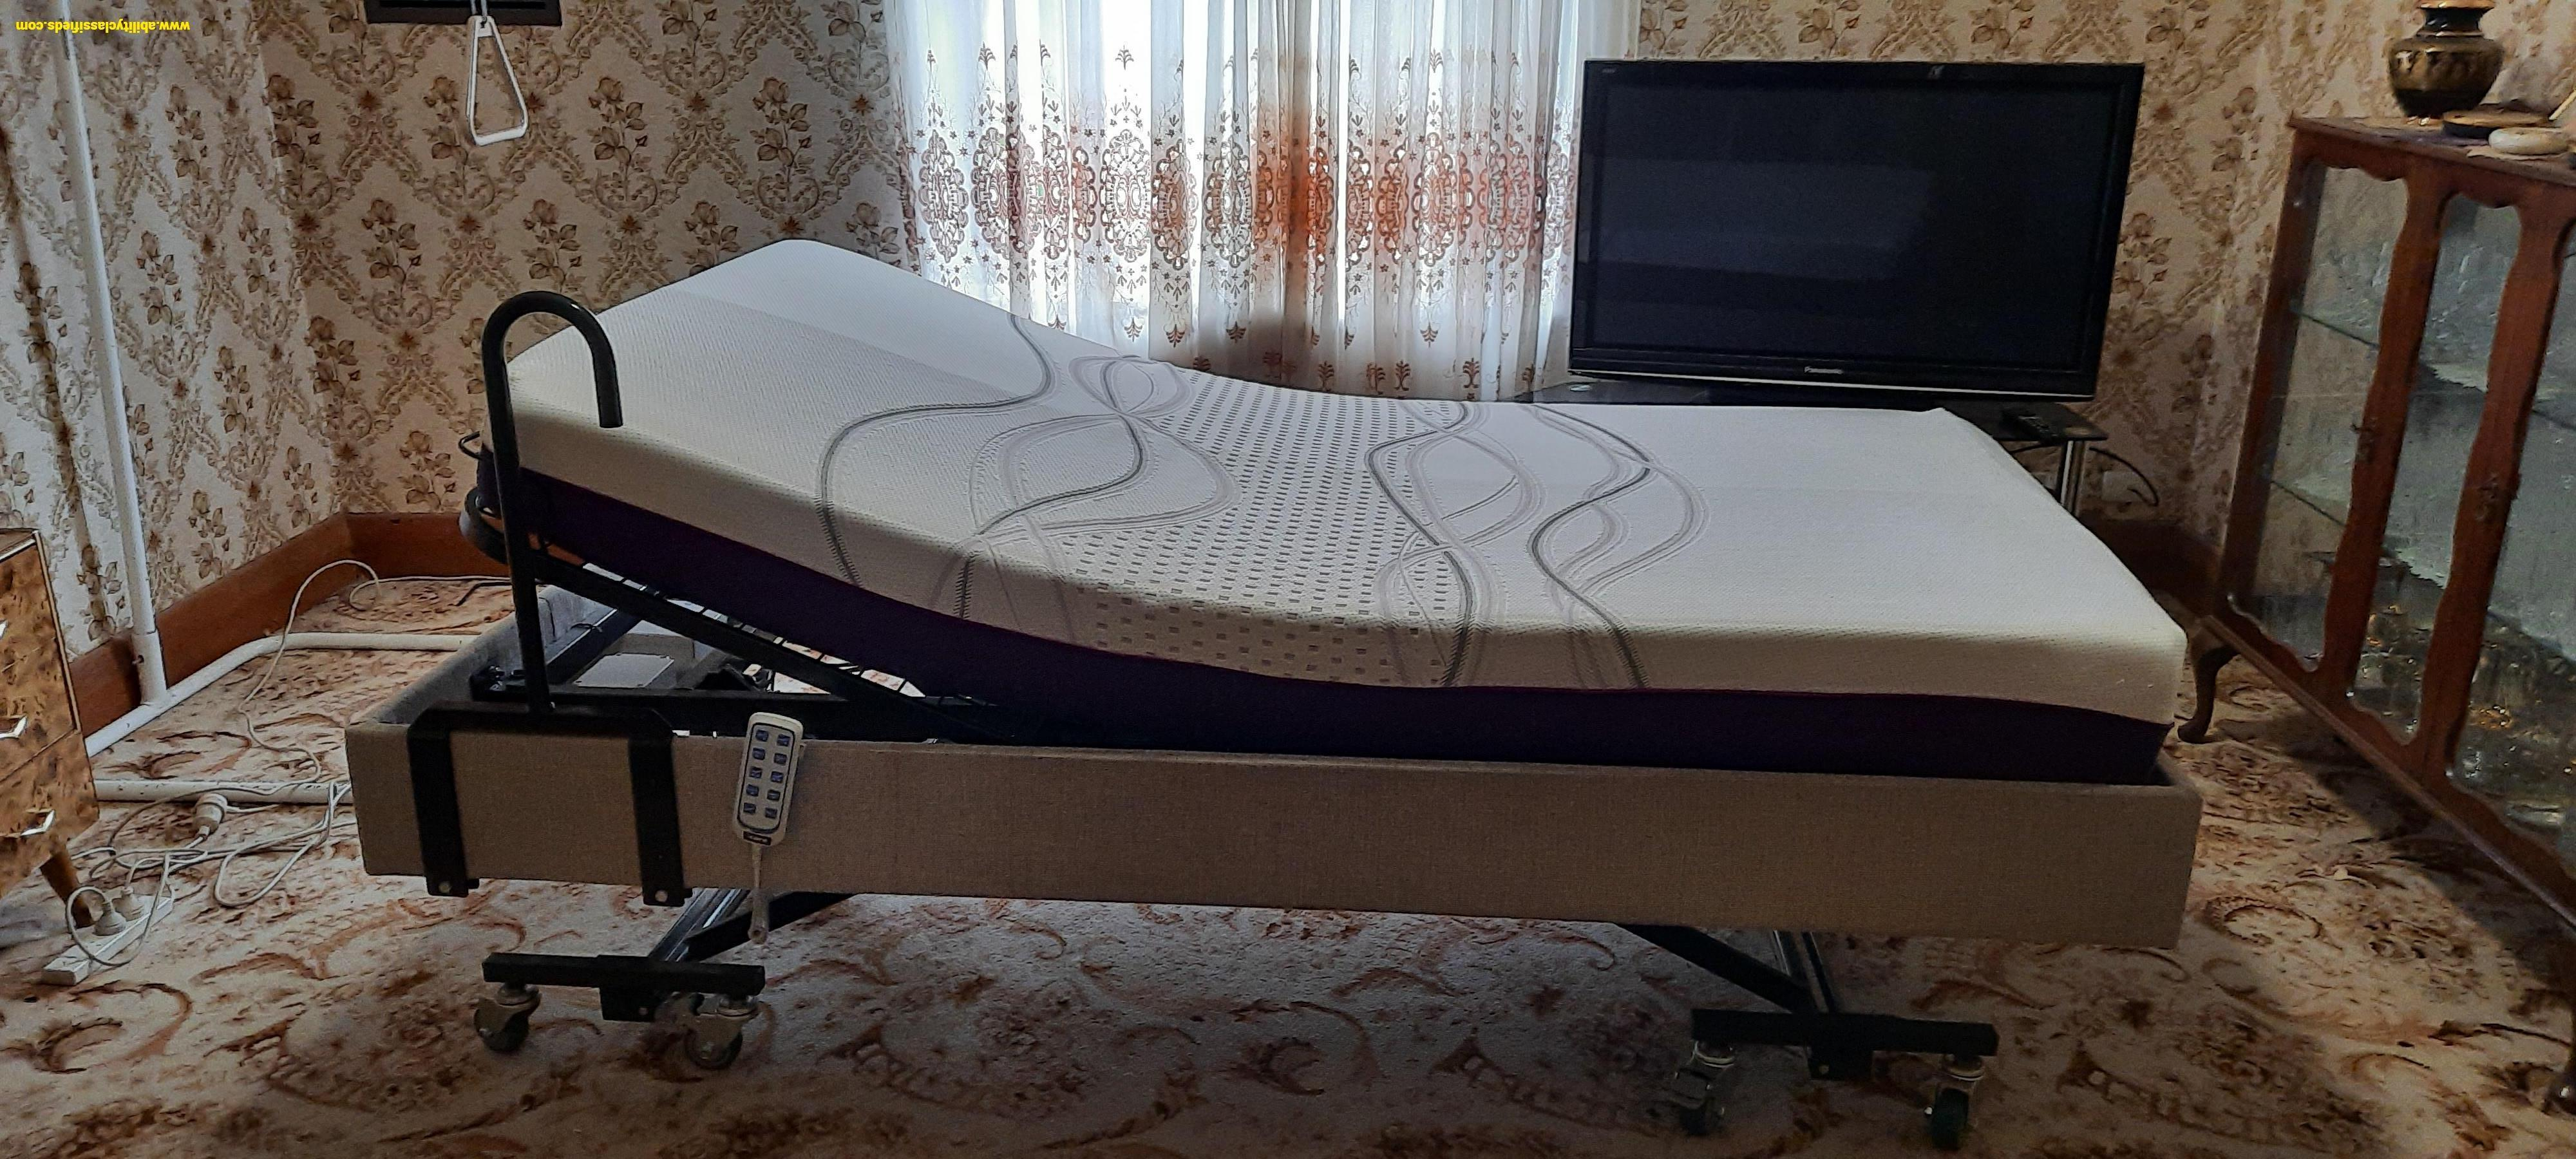 I-Care IC333 King Single Size Homecare Electric Bed